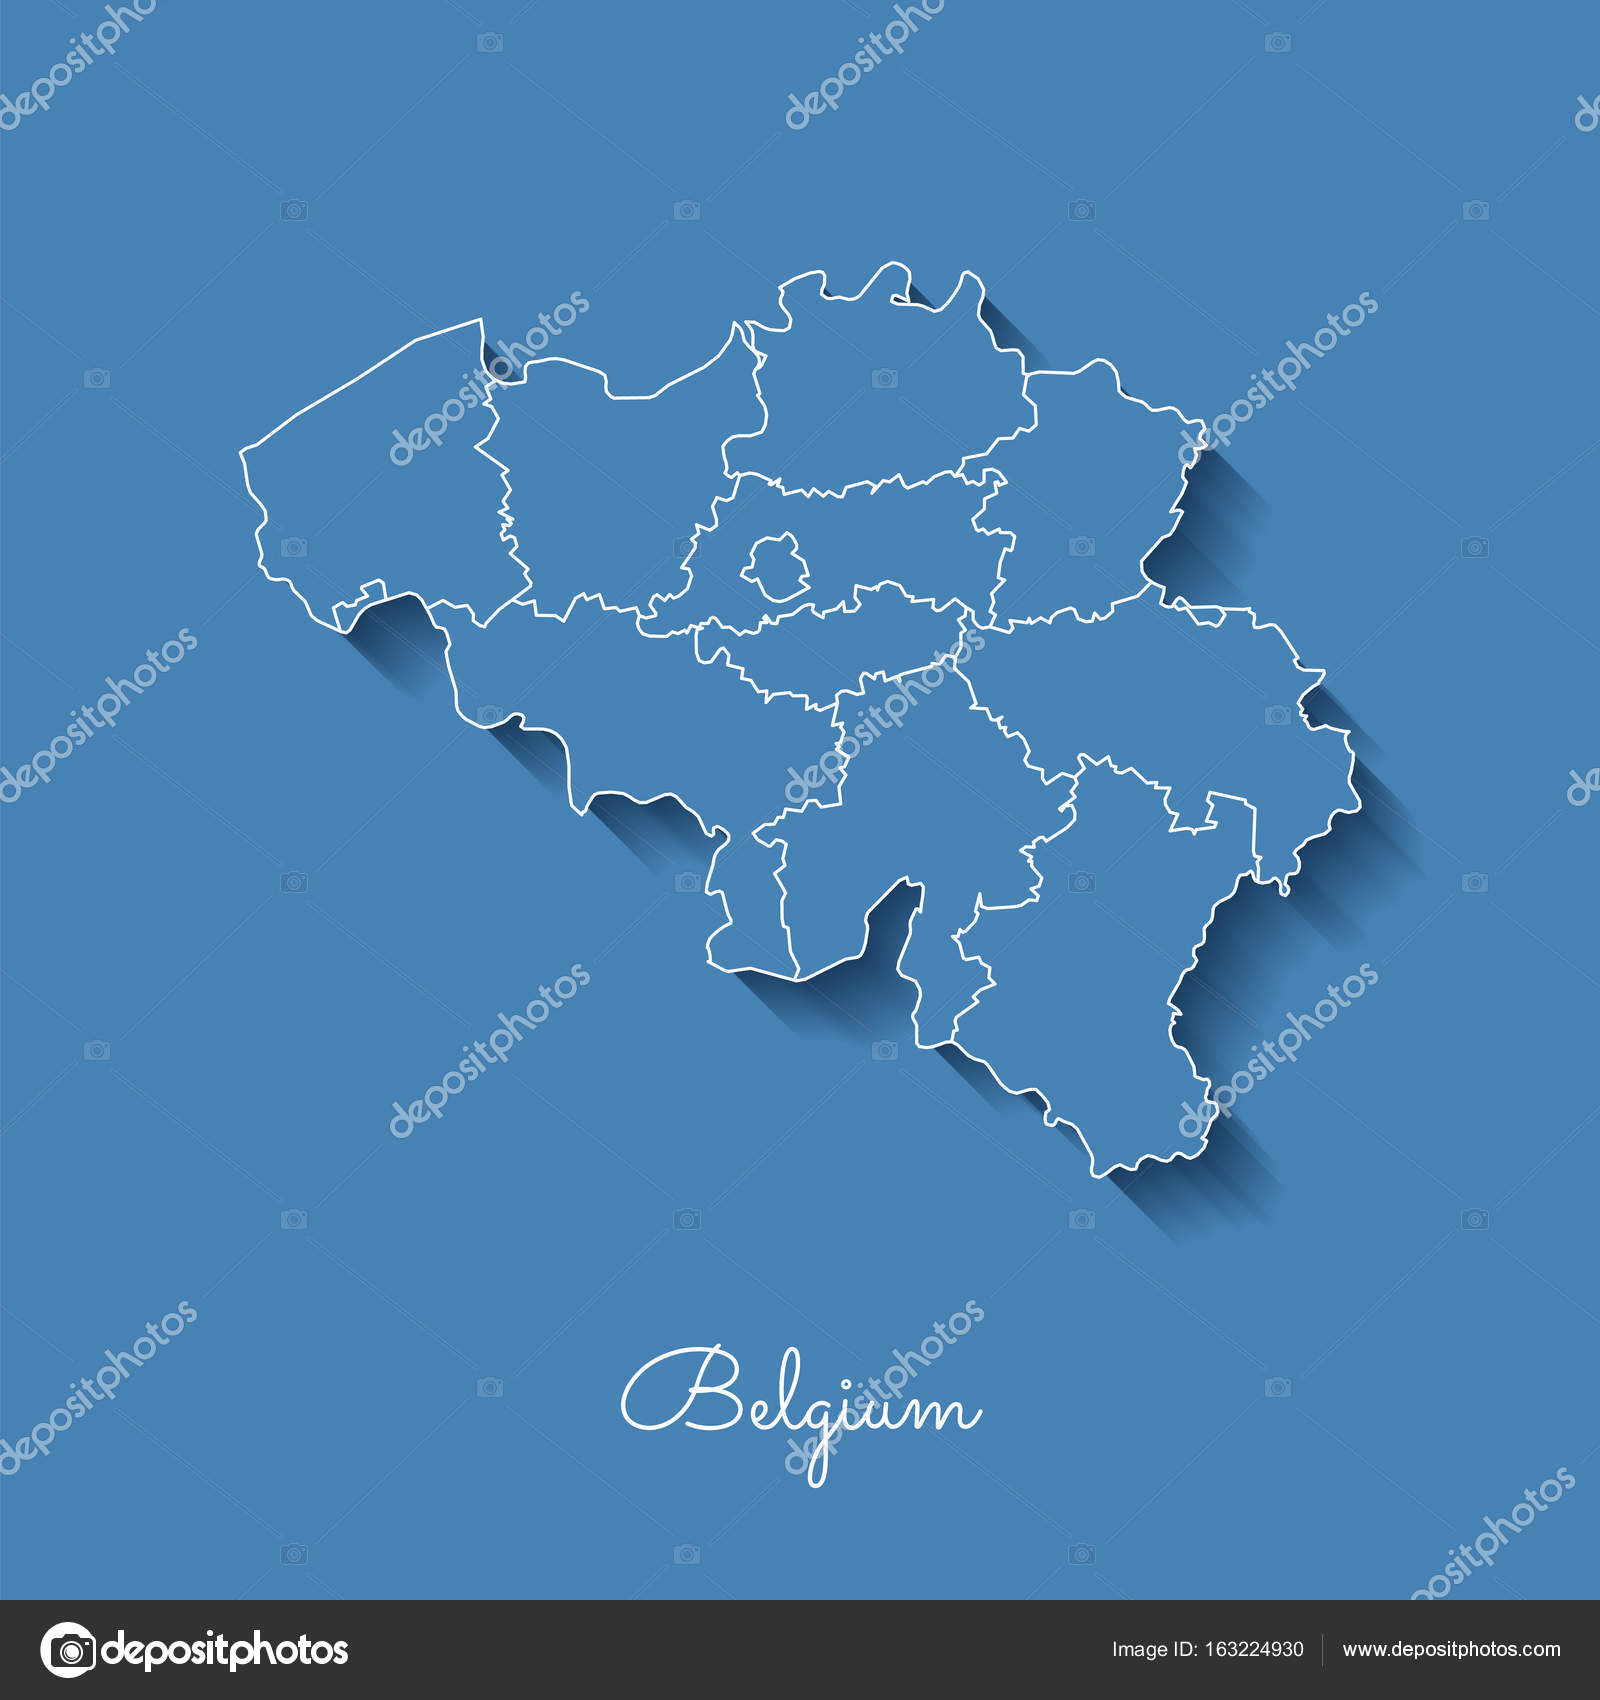 belgium region map blue with white outline and shadow on blue background detailed map of belgium